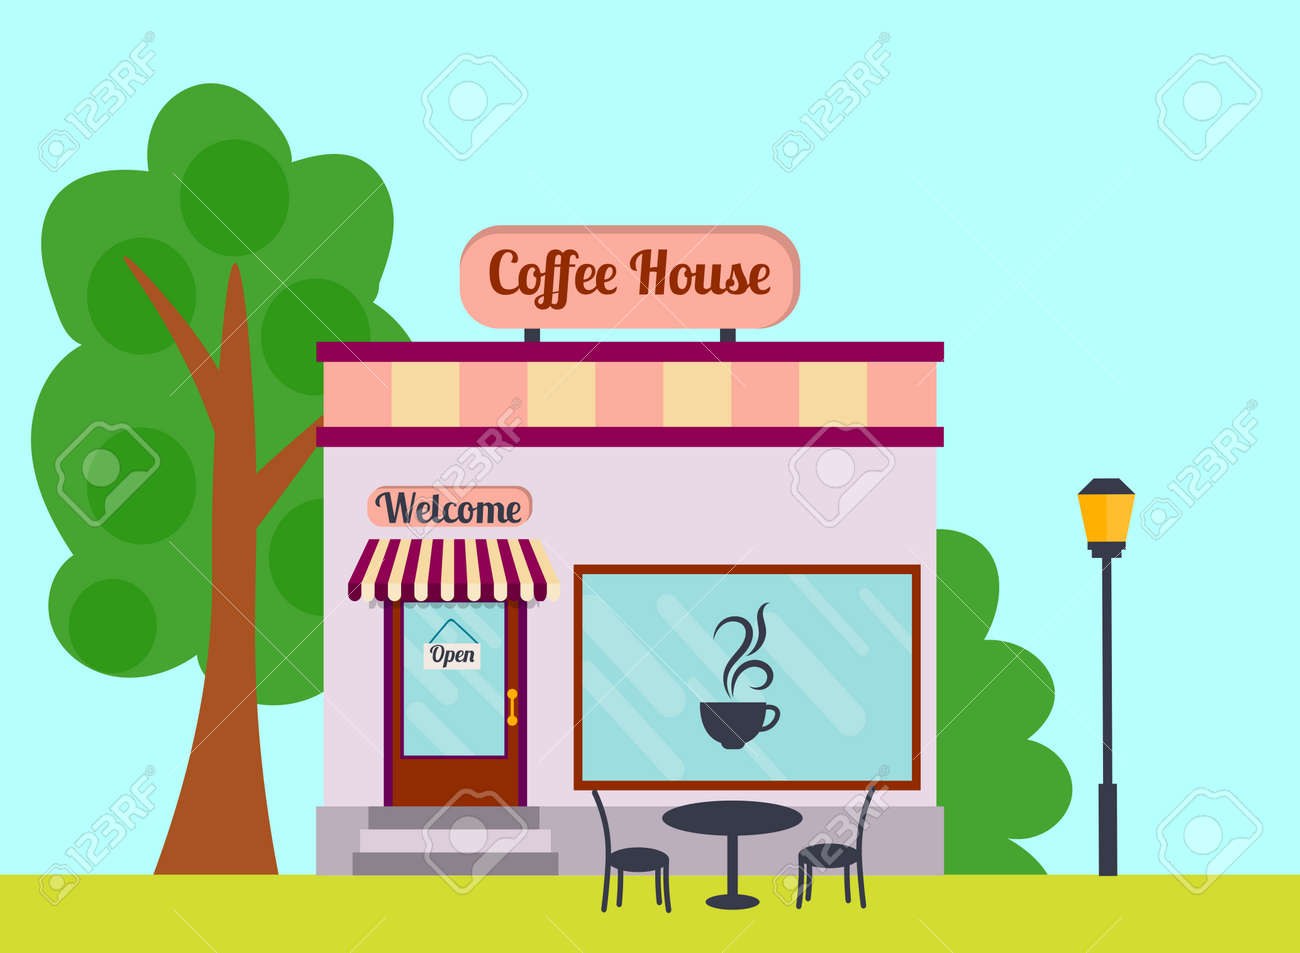 Cartoon Coffee House Facade Of The Building Street View Of Cafe Royalty Free Cliparts Vectors And Stock Illustration Image 142646343